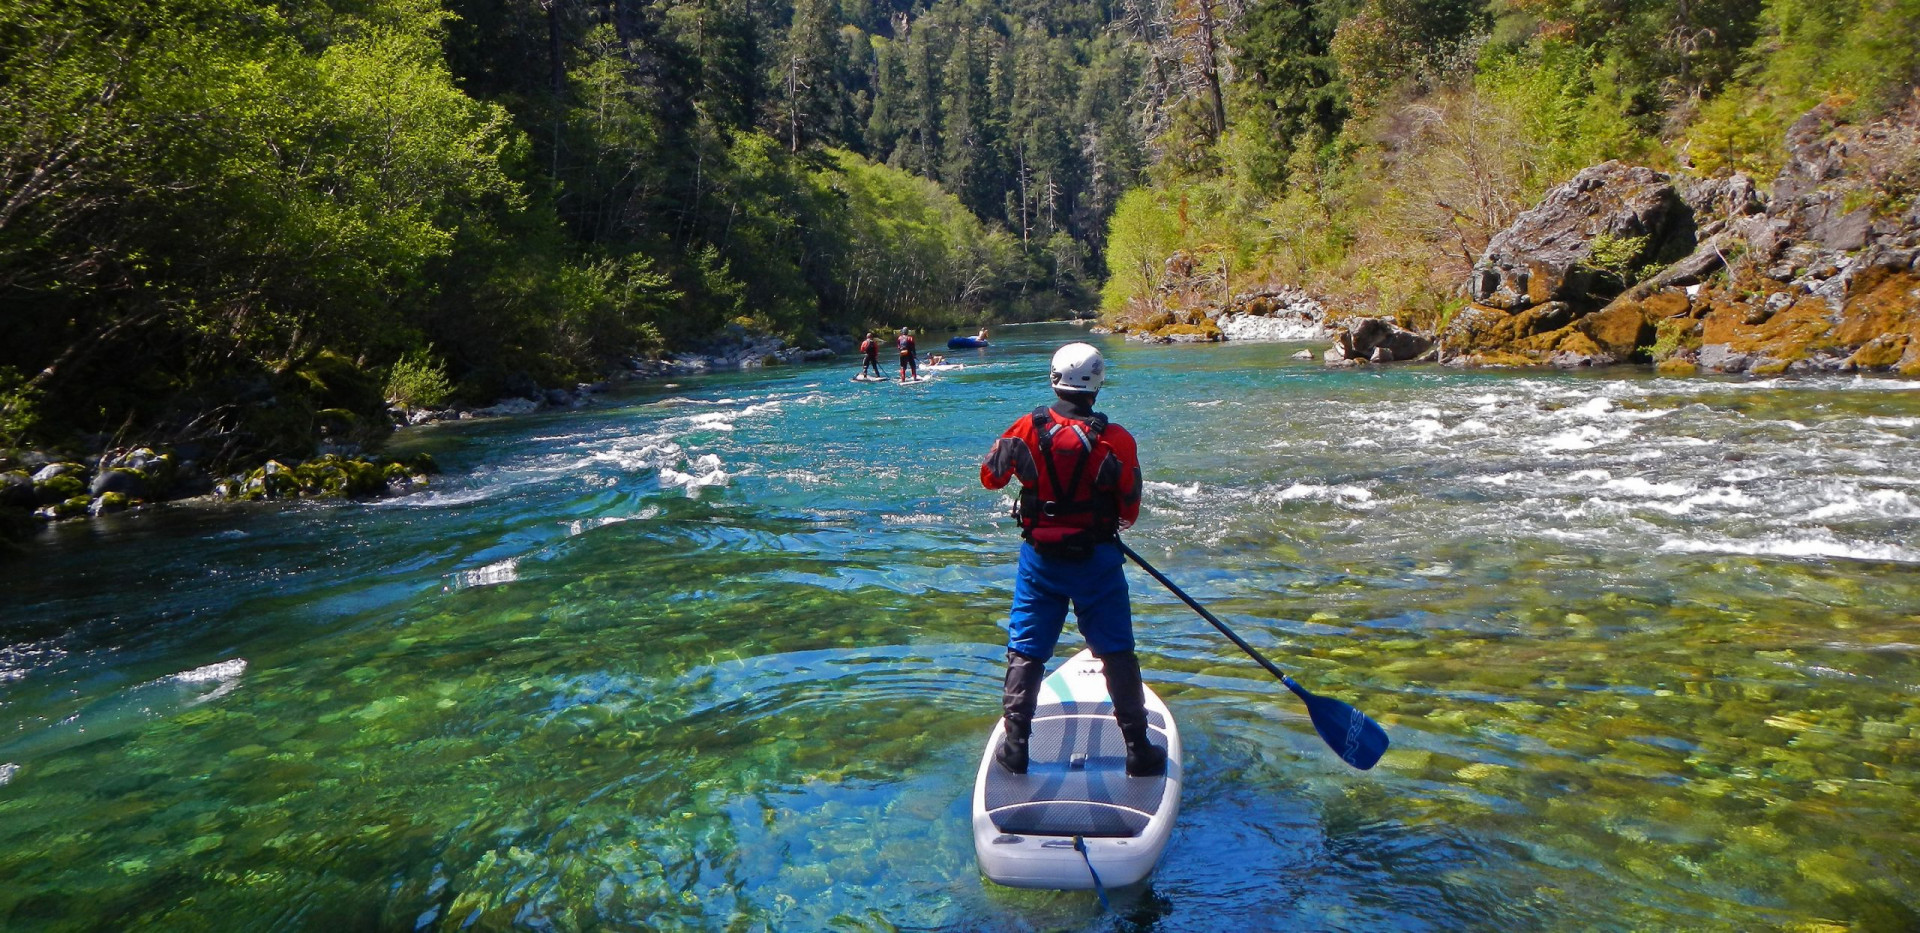 Smith River Kayaking - California - SUP - High Adventure Trips